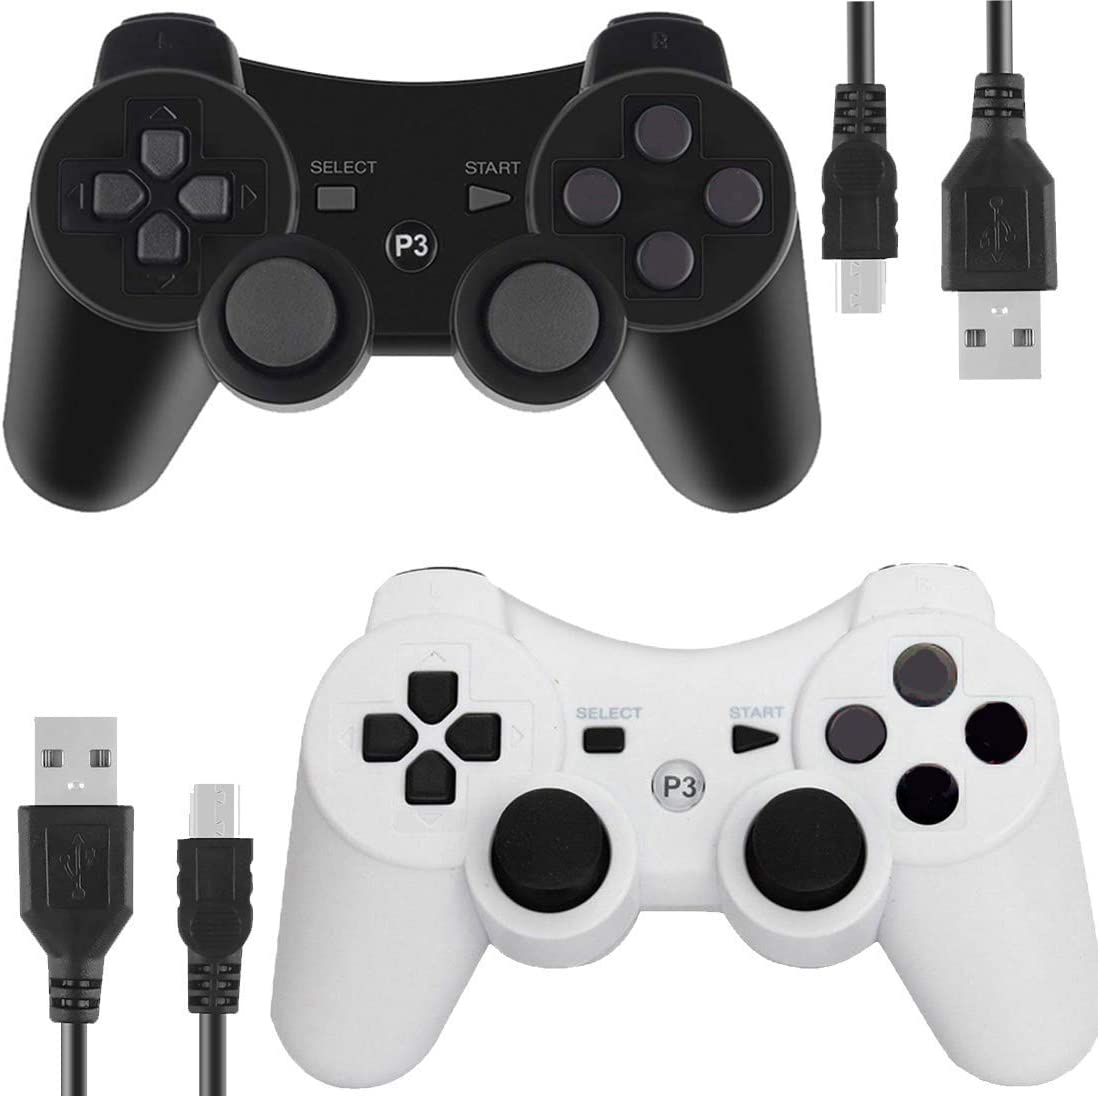 6-FT USB Charging Cable for PS3 Sony Playstation 3 Controller-Black Kailisen